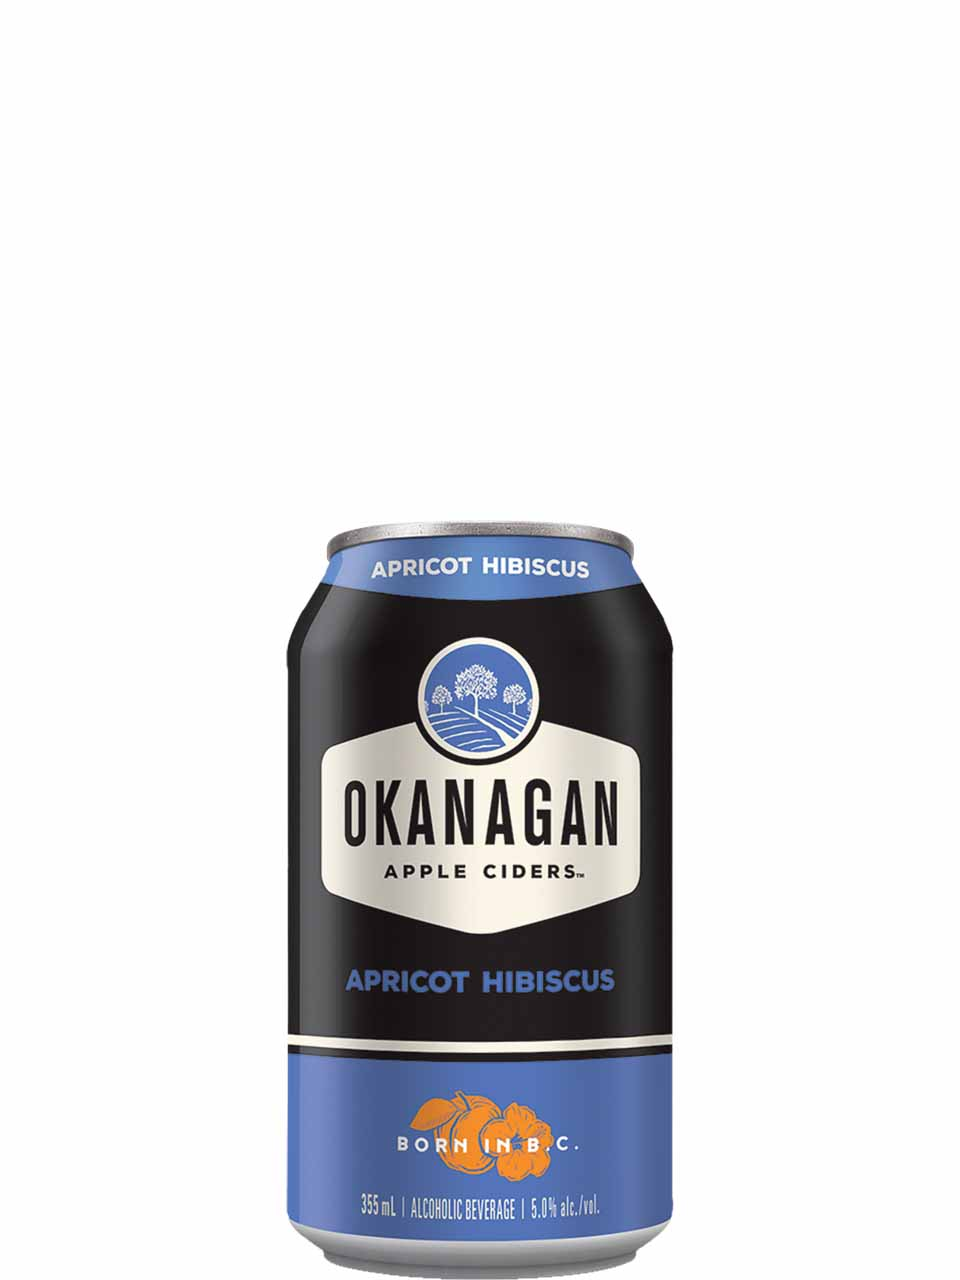 Okanagan Apricot Hibiscus Cider 6 Pack Cans